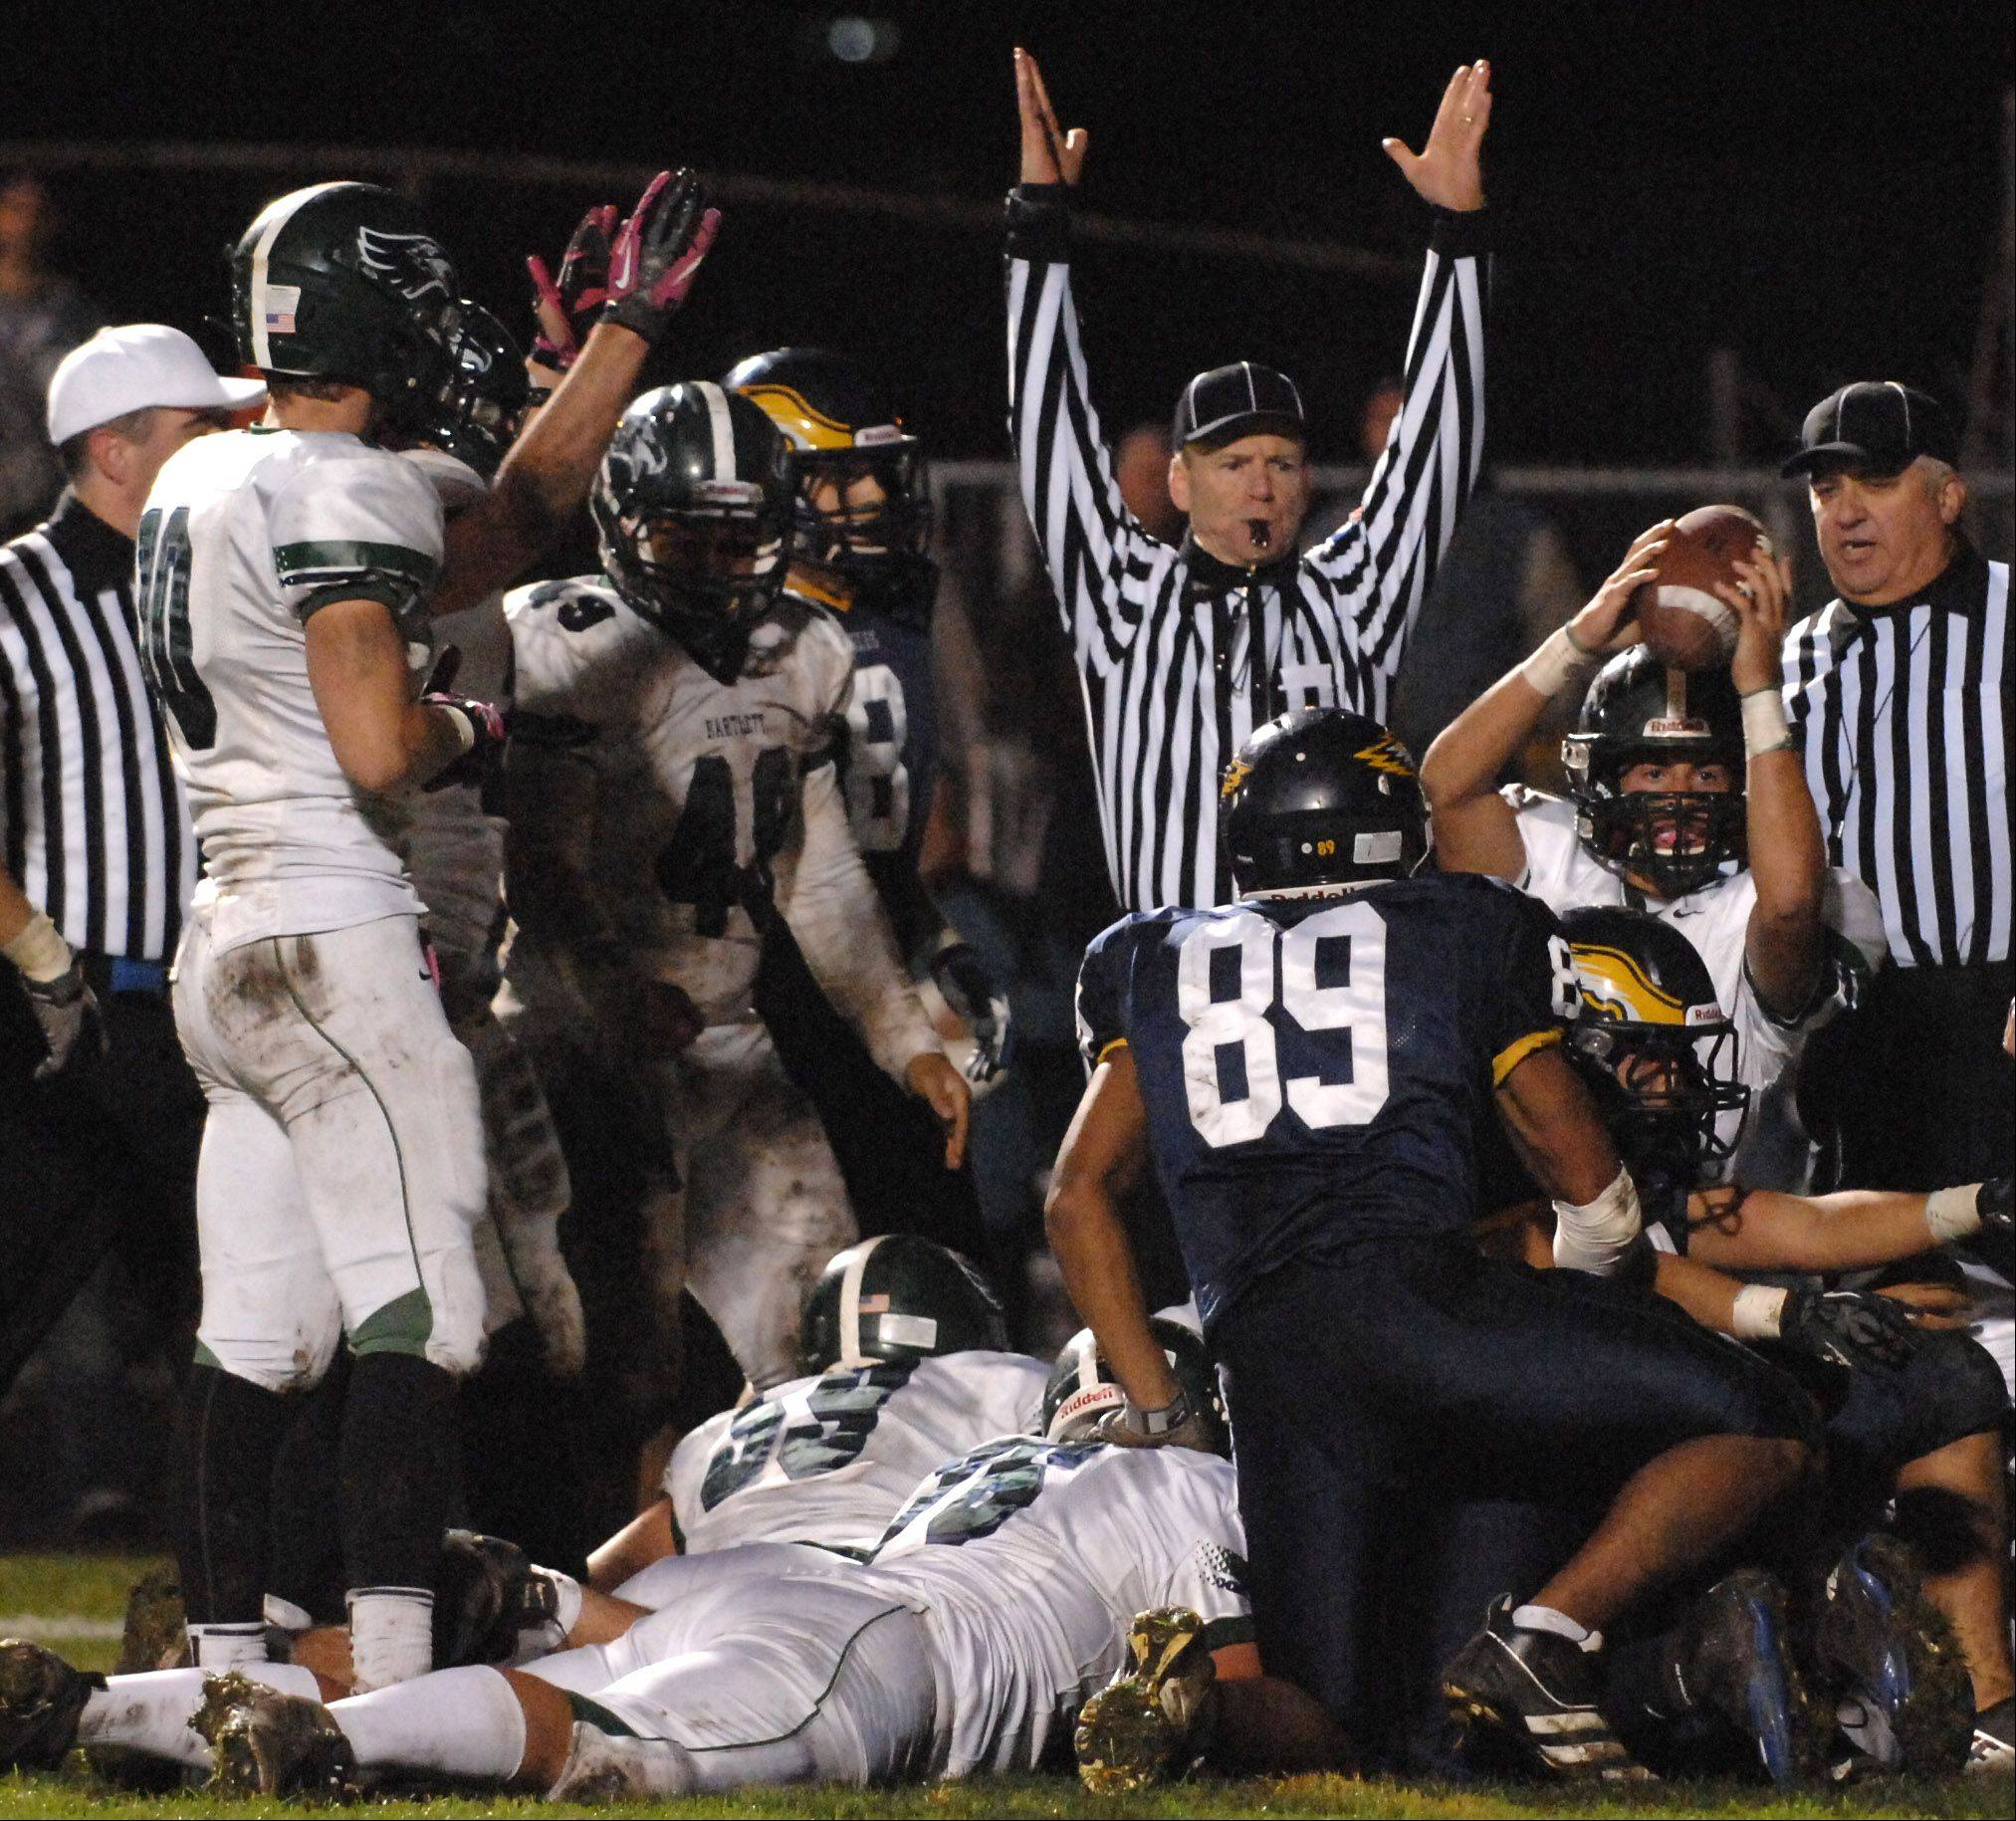 Images: Bartlett vs. Leyden football